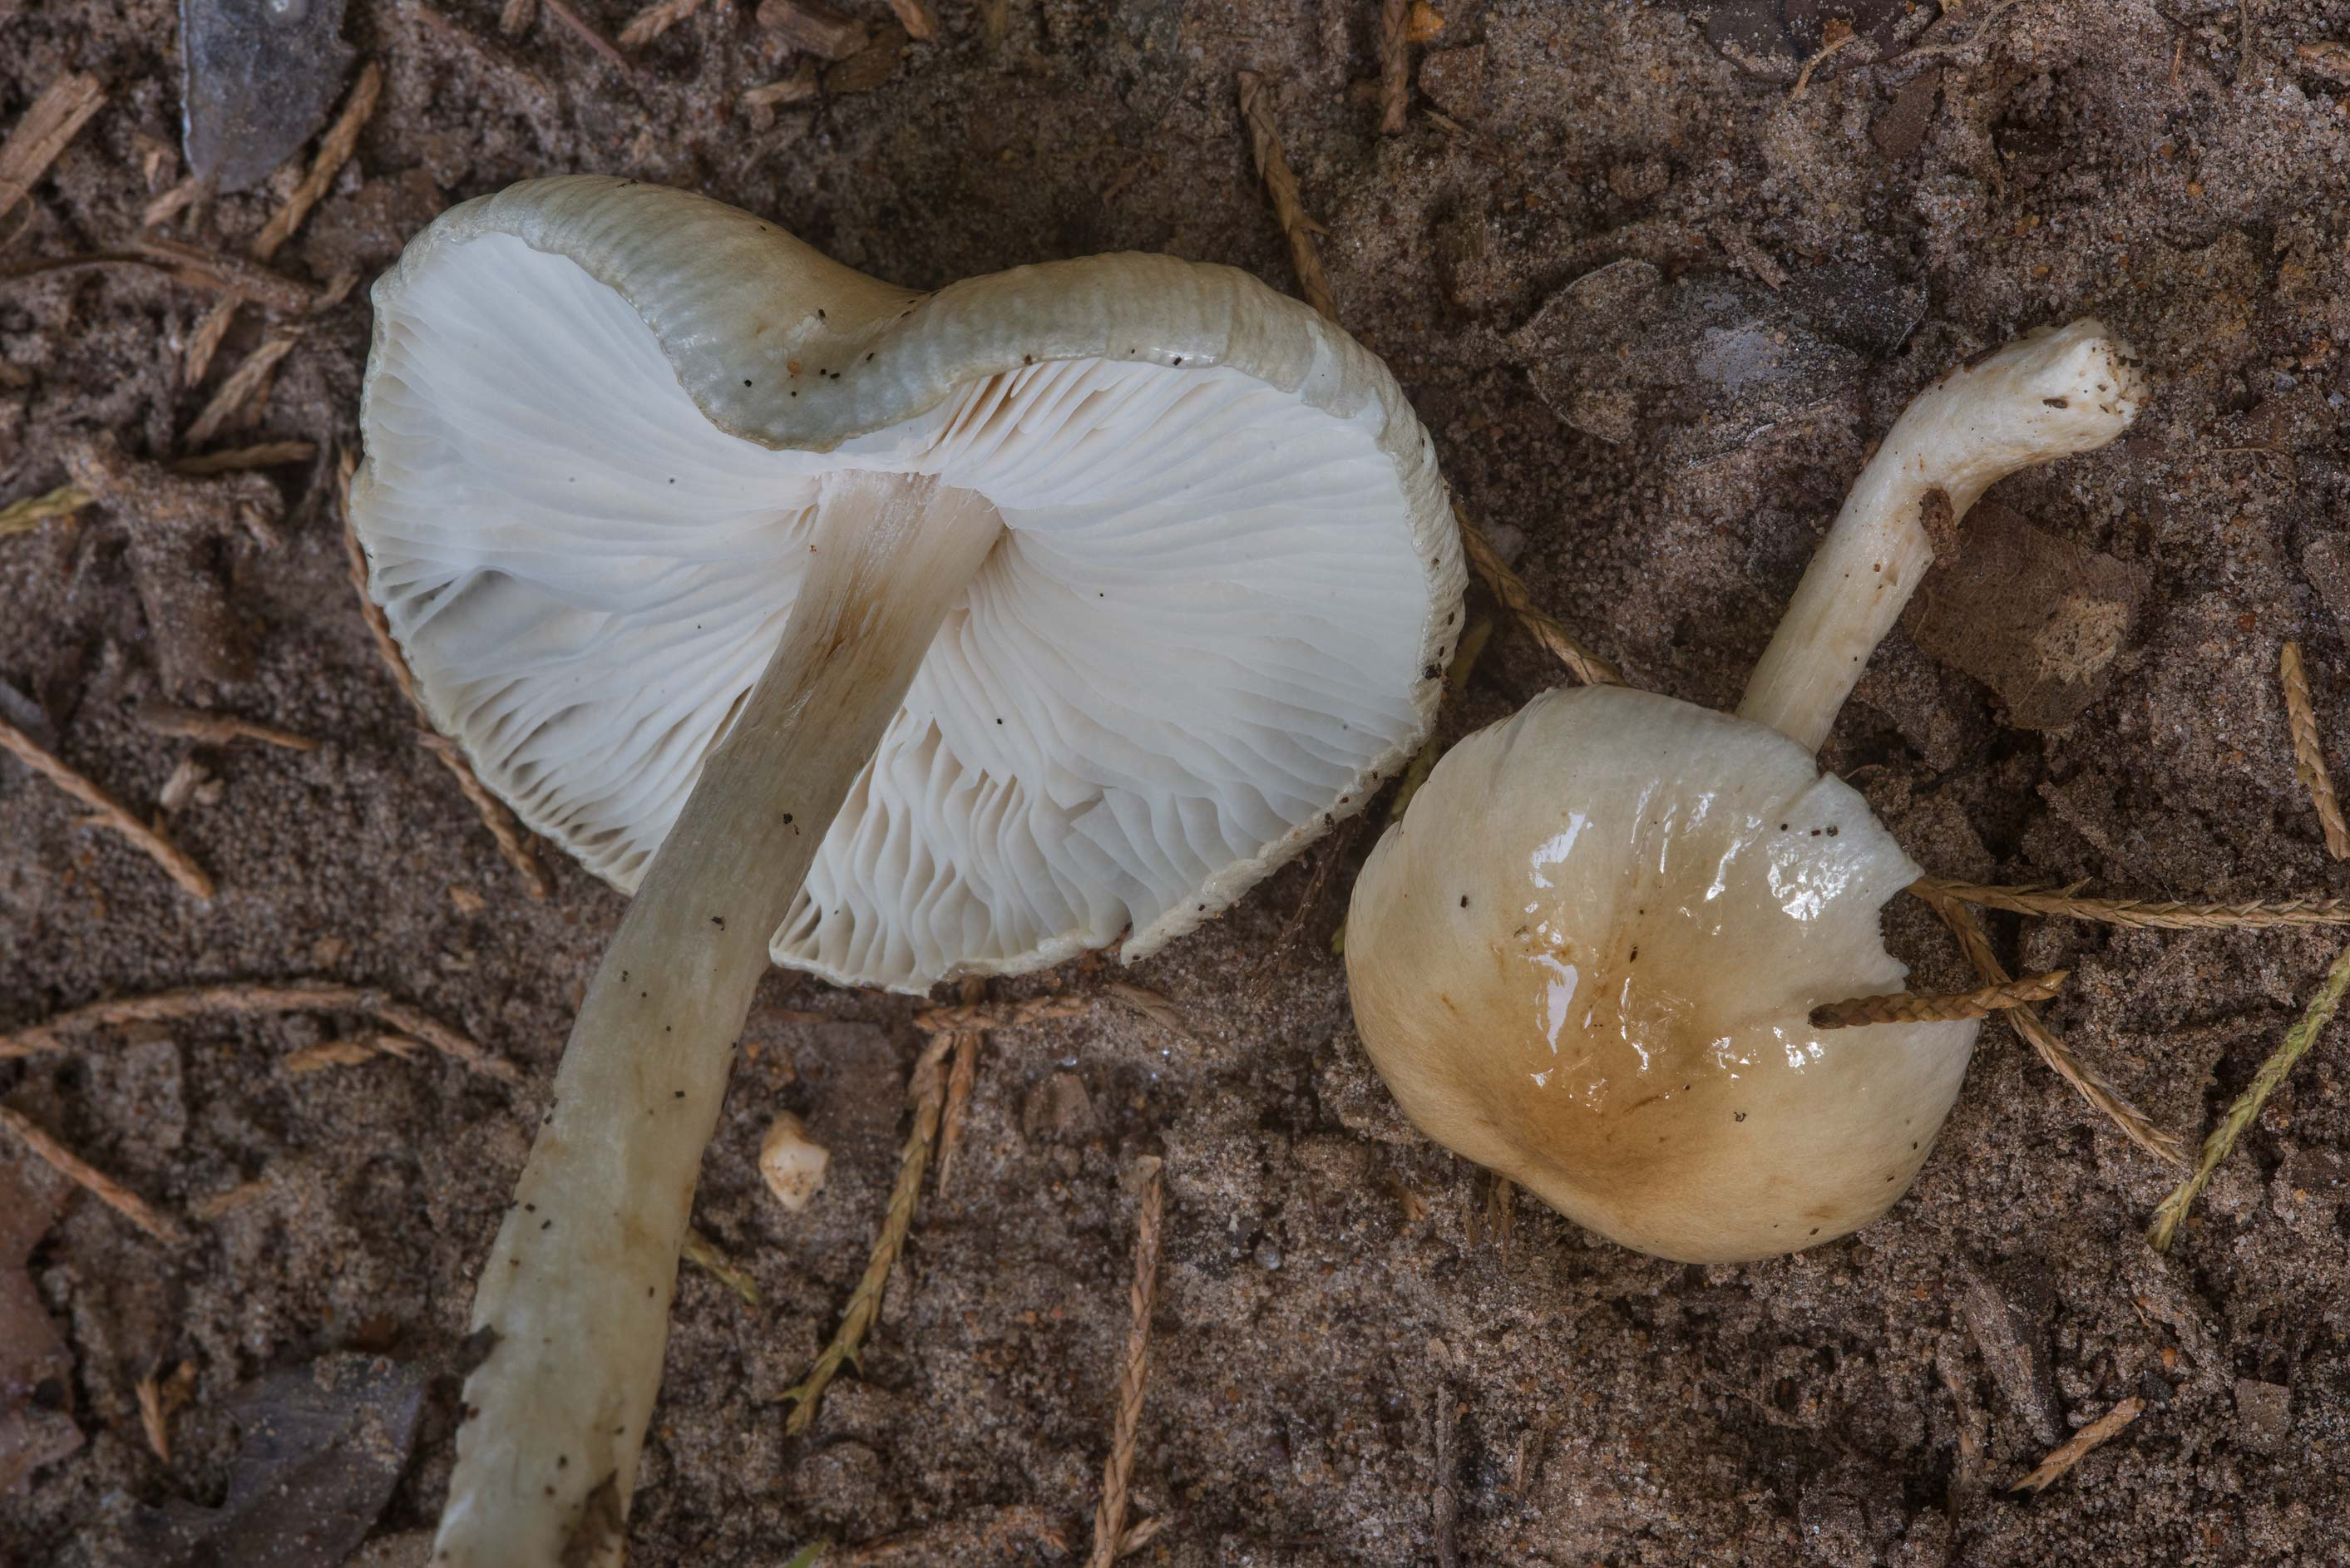 Overflowing Slimy Stem mushrooms (Limacella...Creek Park. College Station, Texas